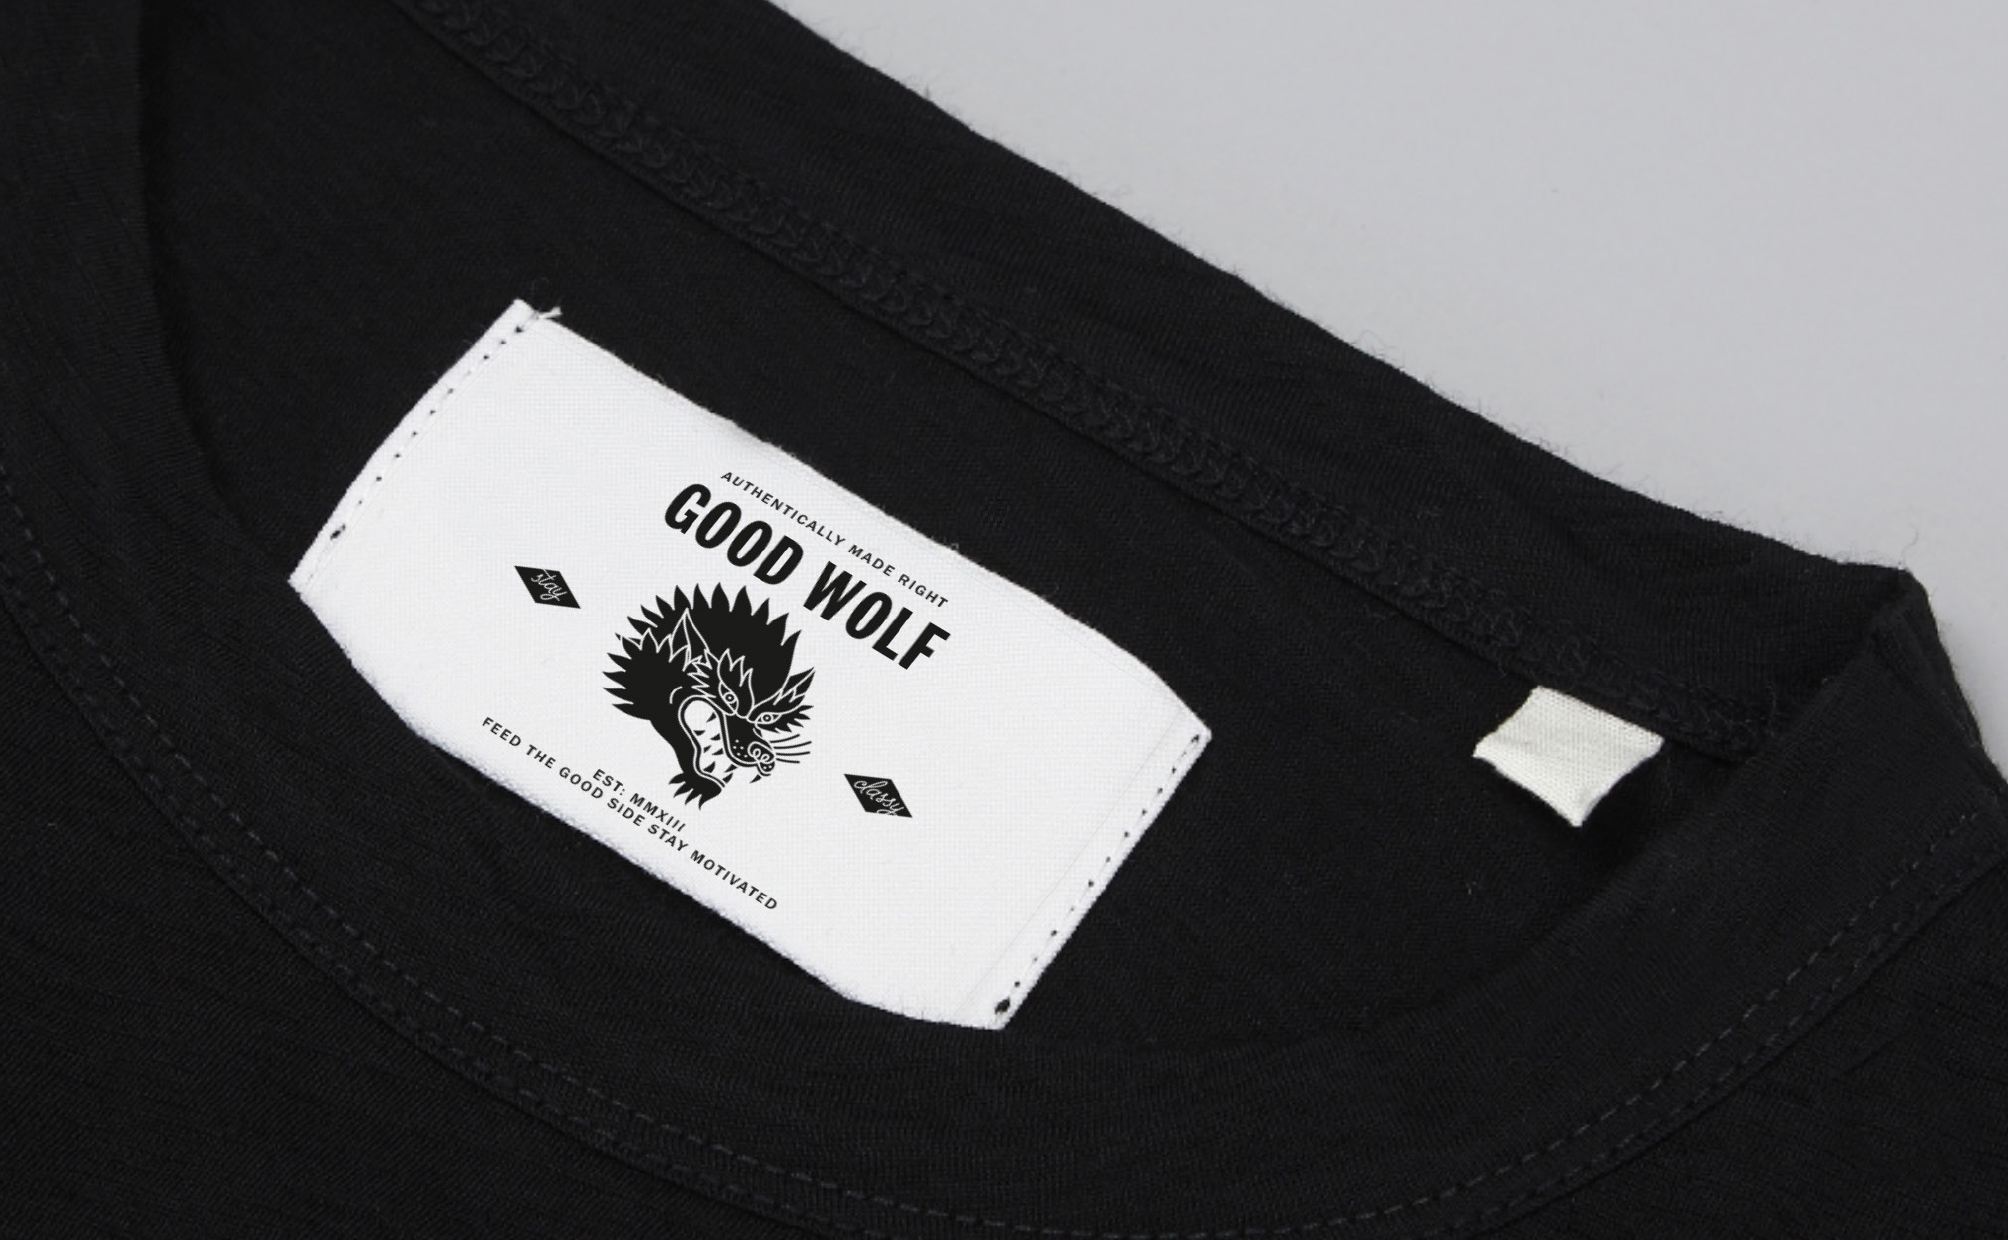 Goodwolf for porfolio-9